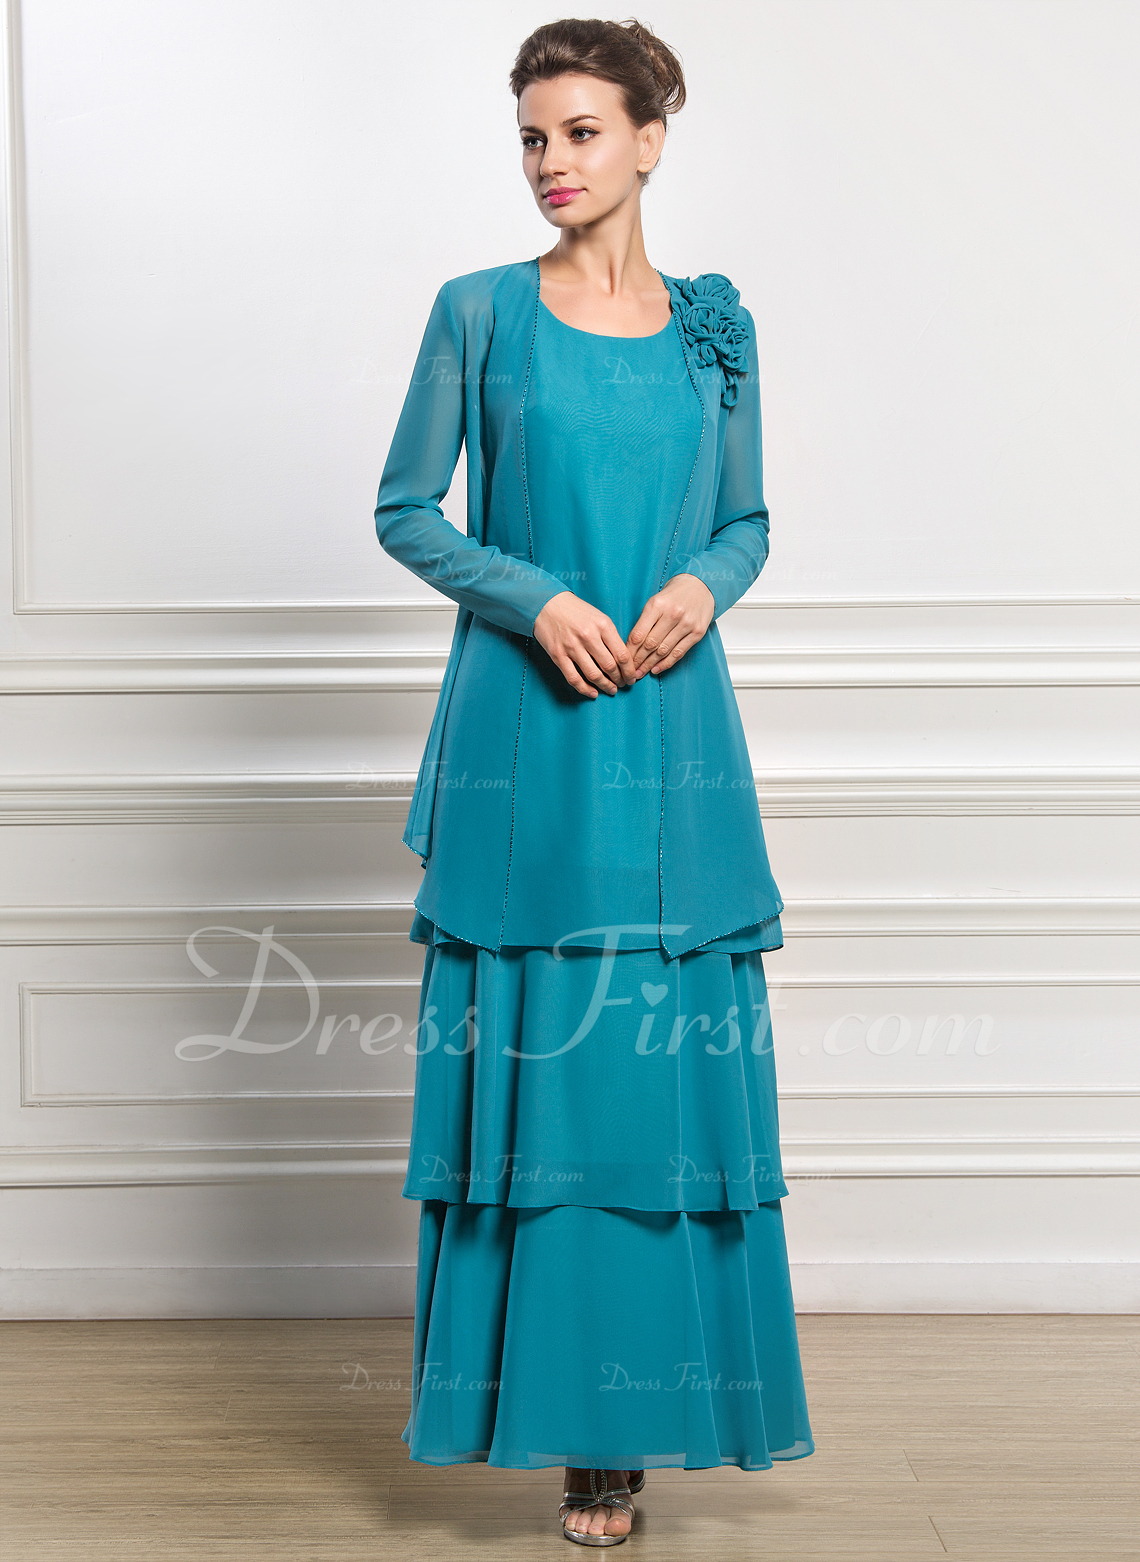 A-Line Scoop Neck Ankle-Length Chiffon Mother of the Bride Dress